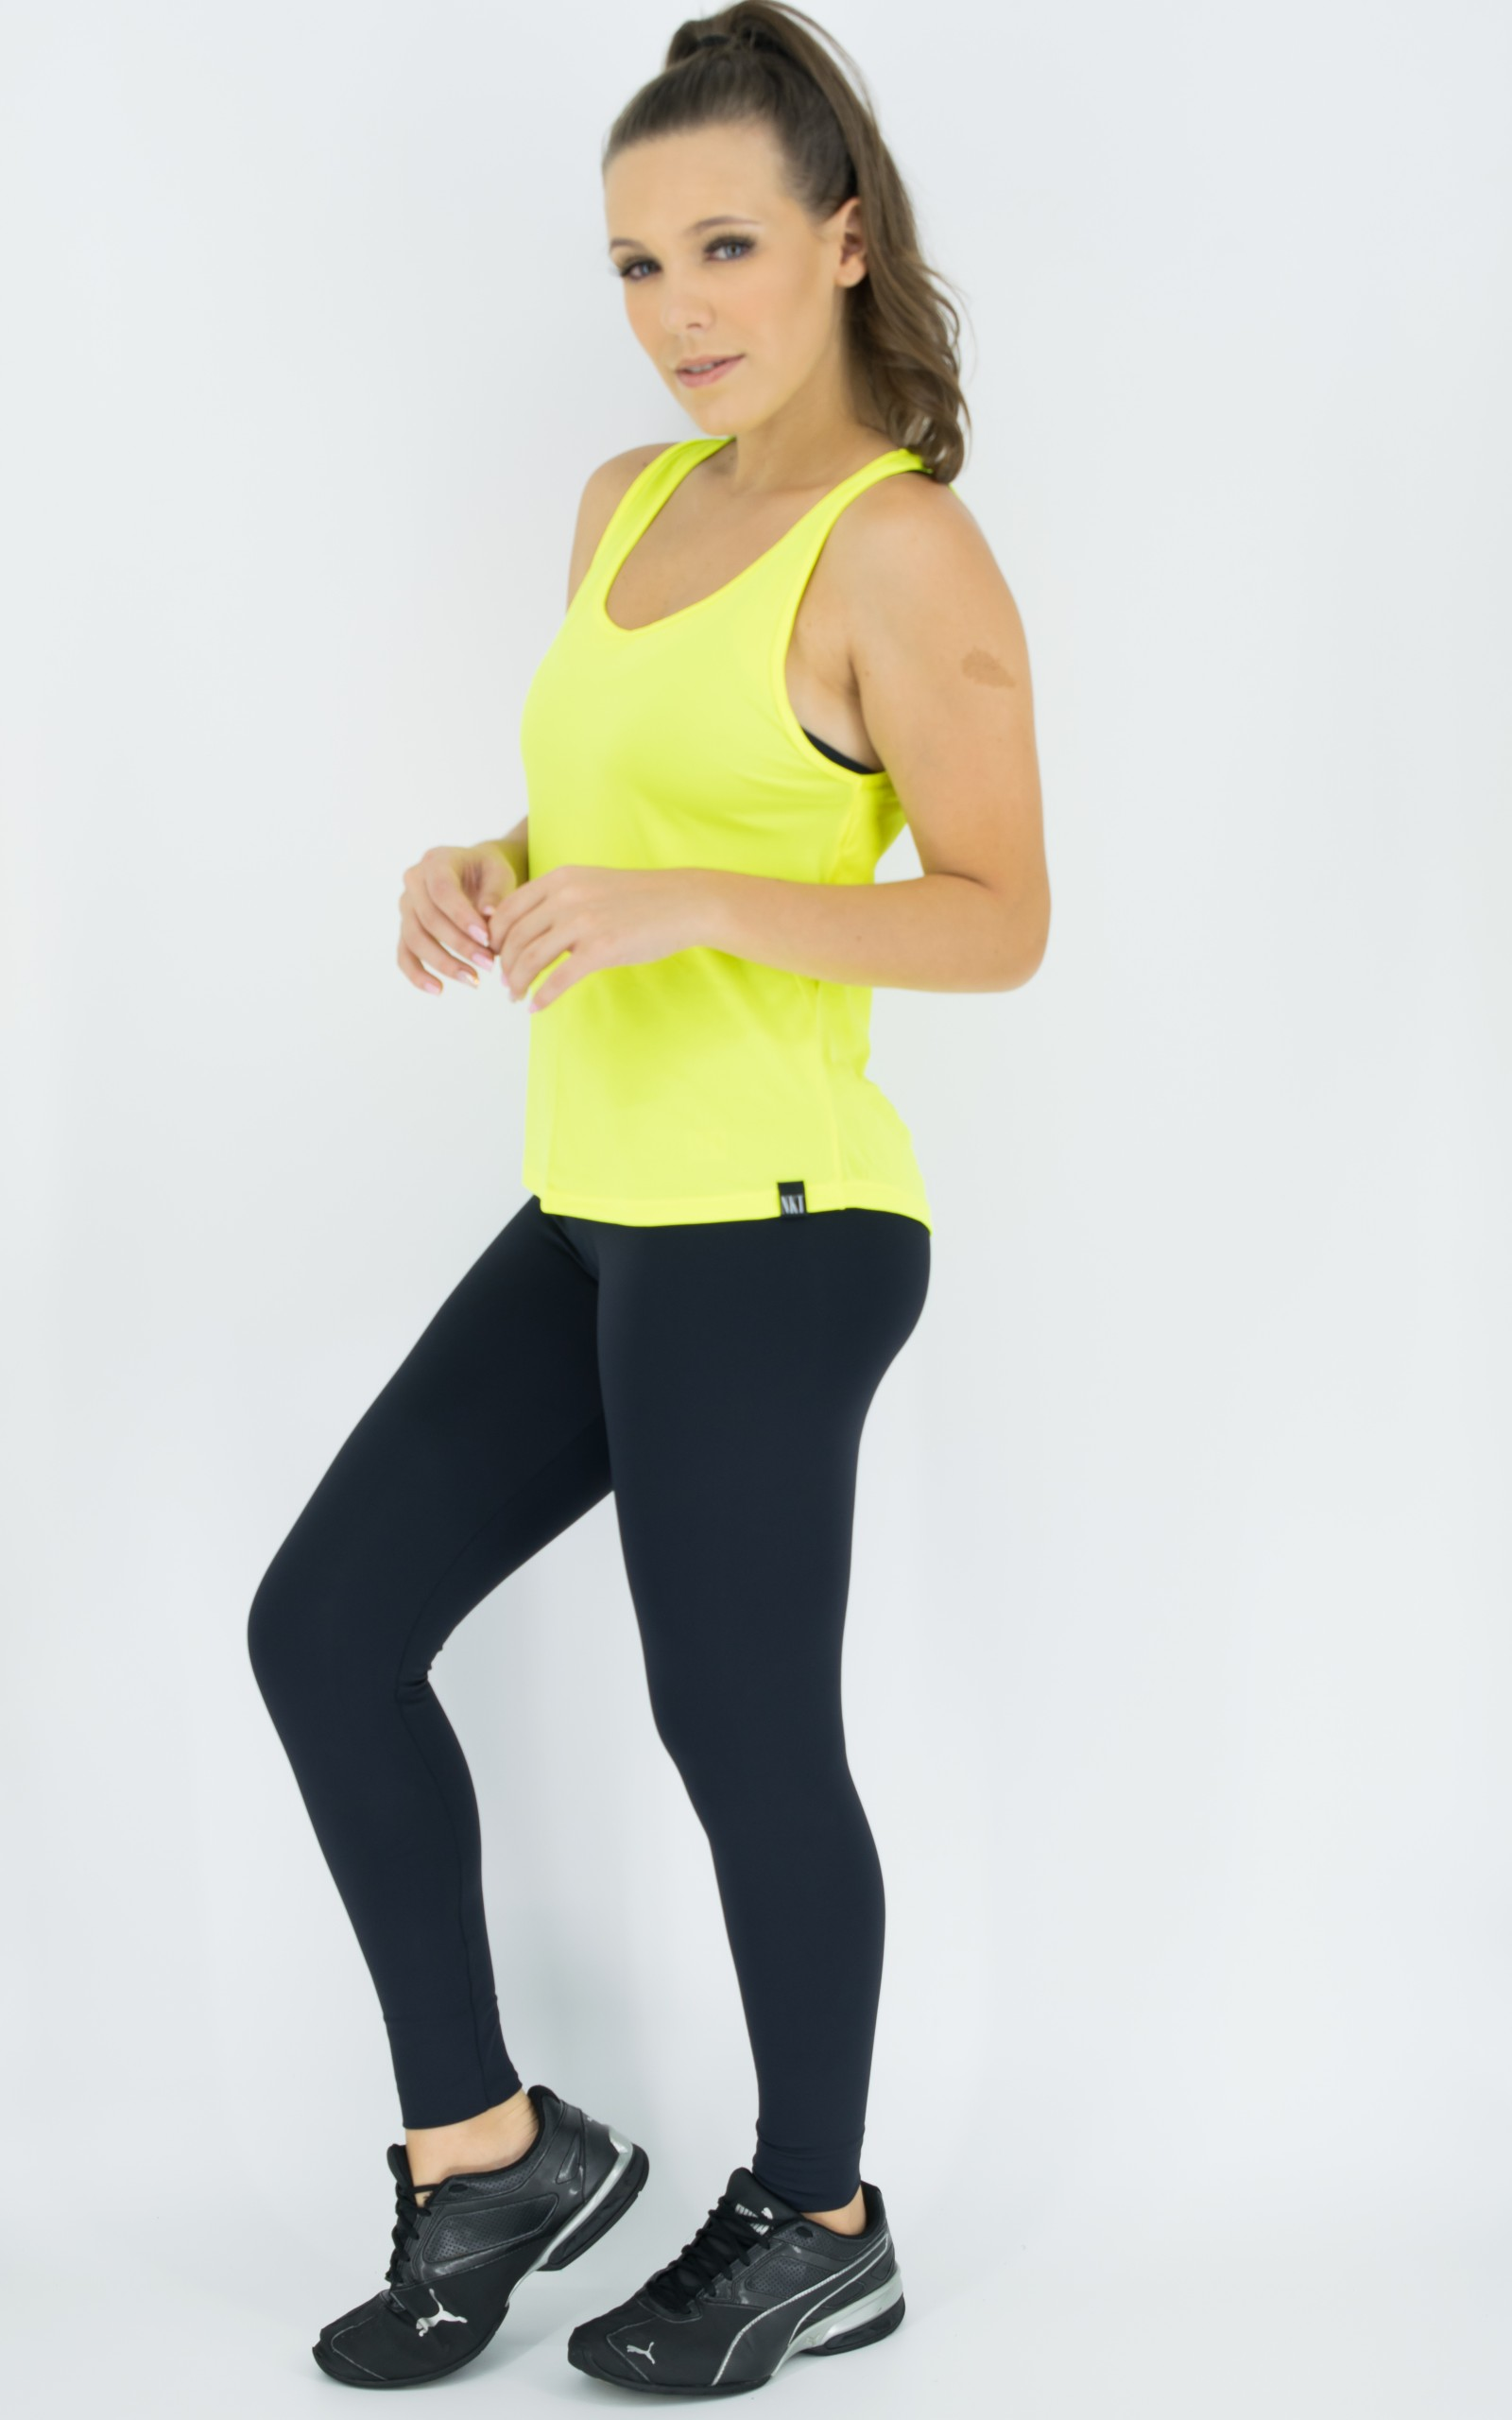 Regata Lux Neon, Coleção Move Your Body - NKT Fitwear Moda Fitness